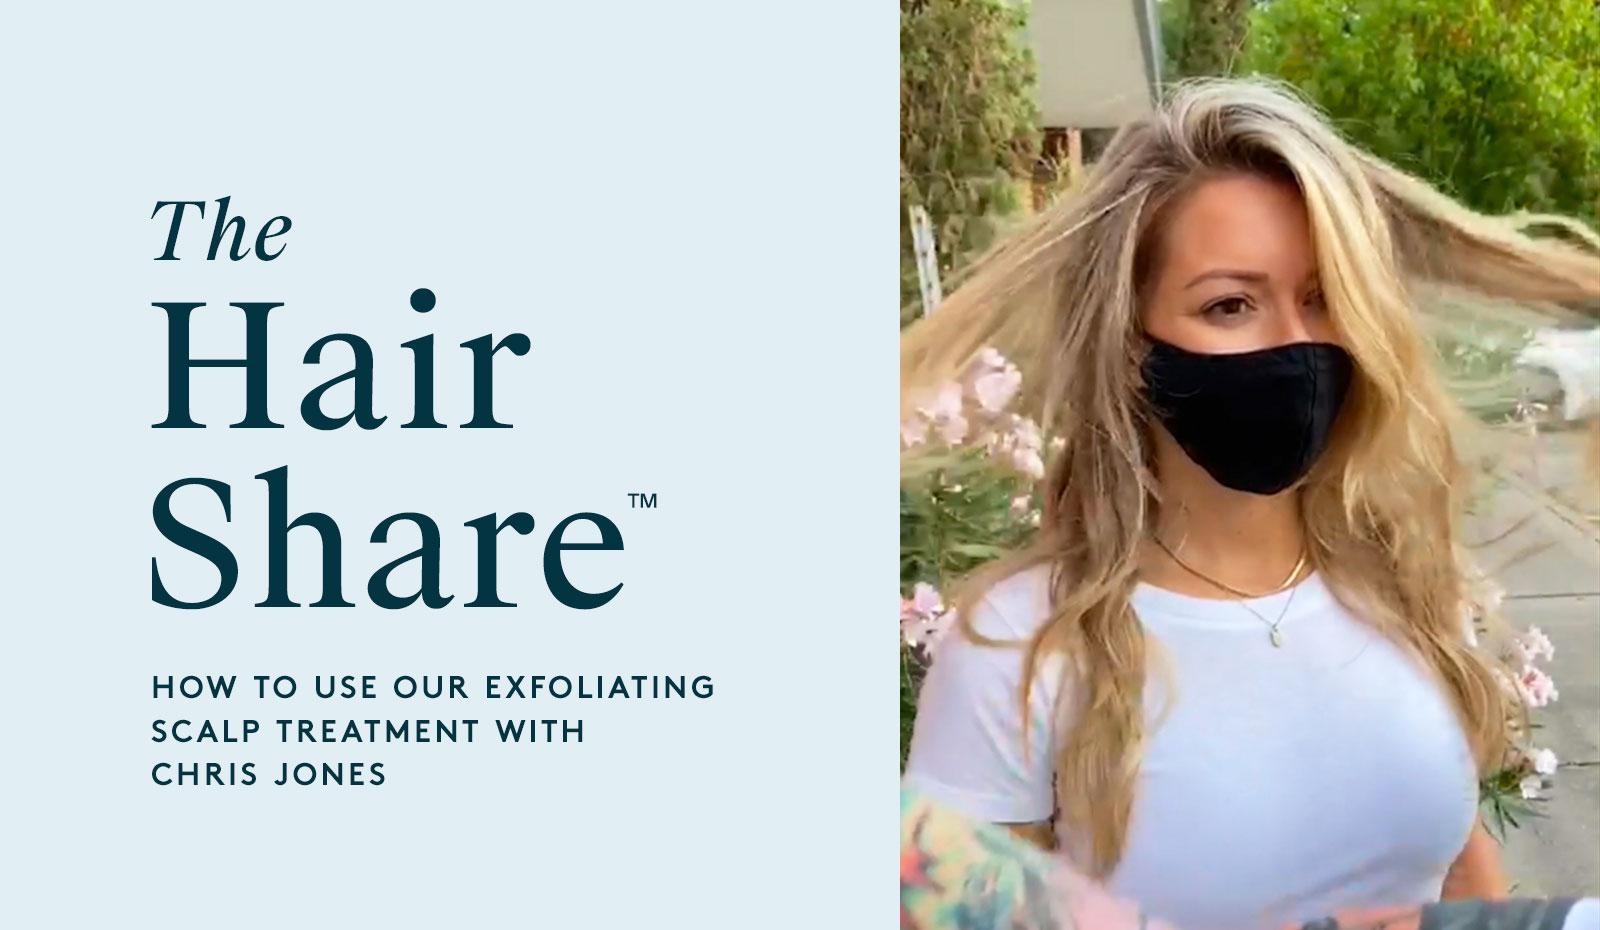 The Hair Share®: How To Use Our Exfoliating Scalp Treatment with Chris Jones